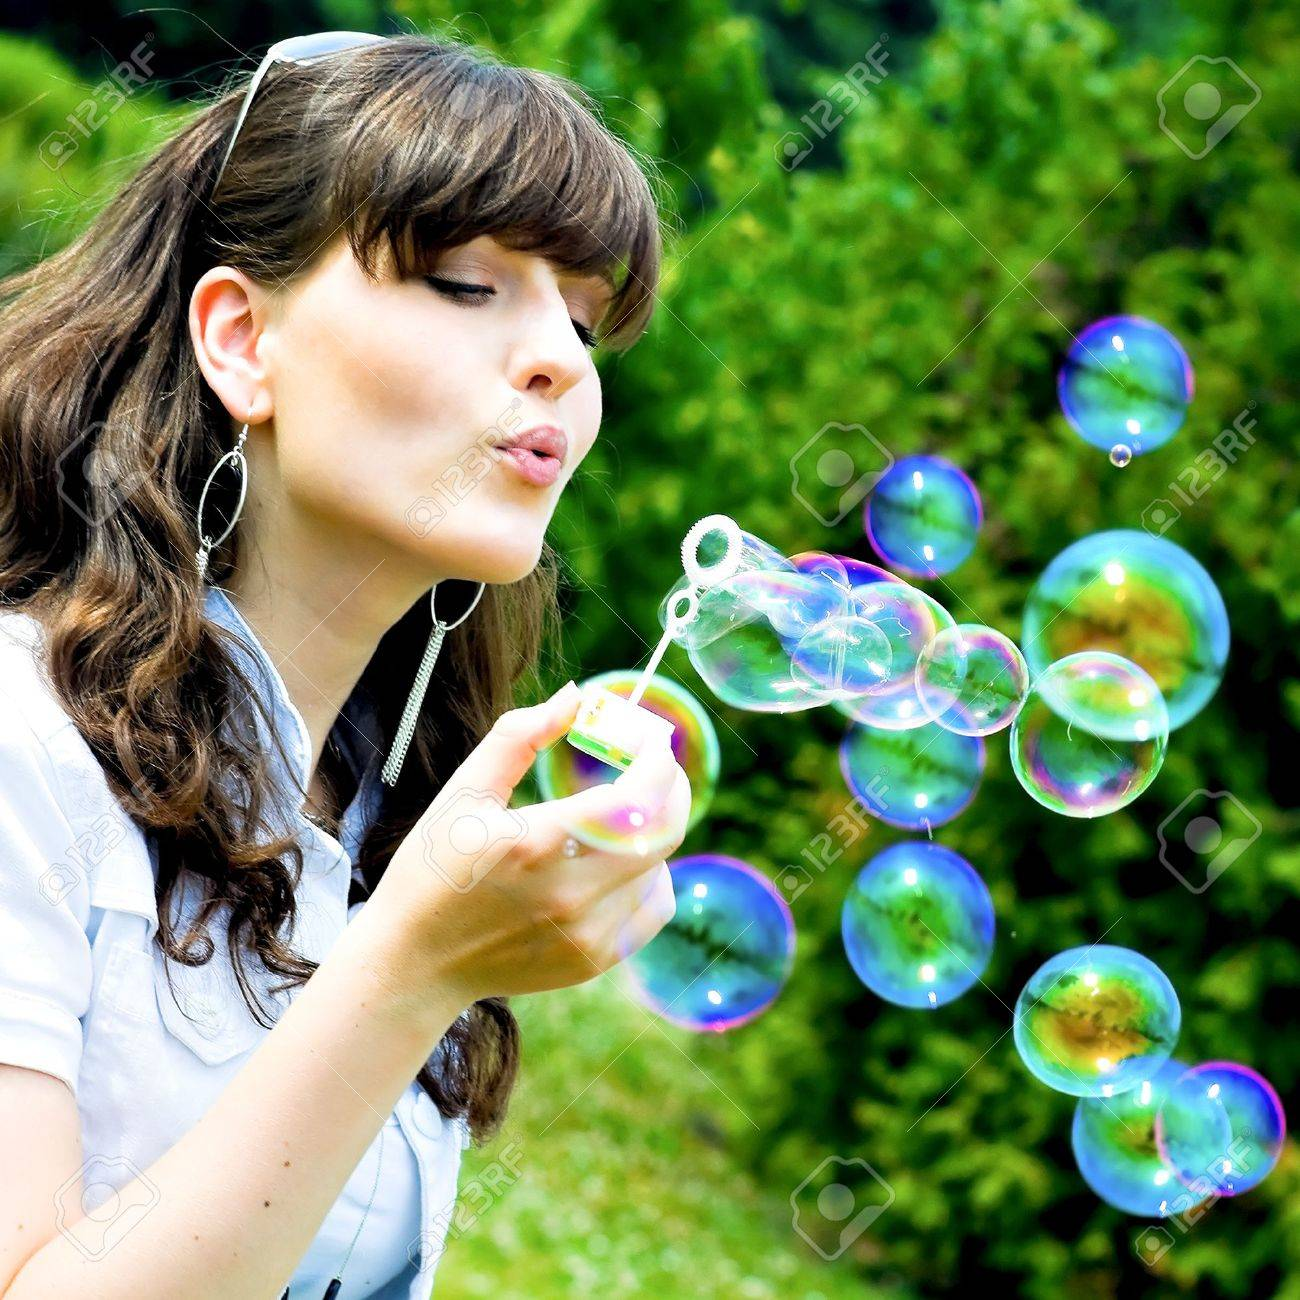 attractive girl blowing soap bubbles in summer green park Stock Photo - 5676060